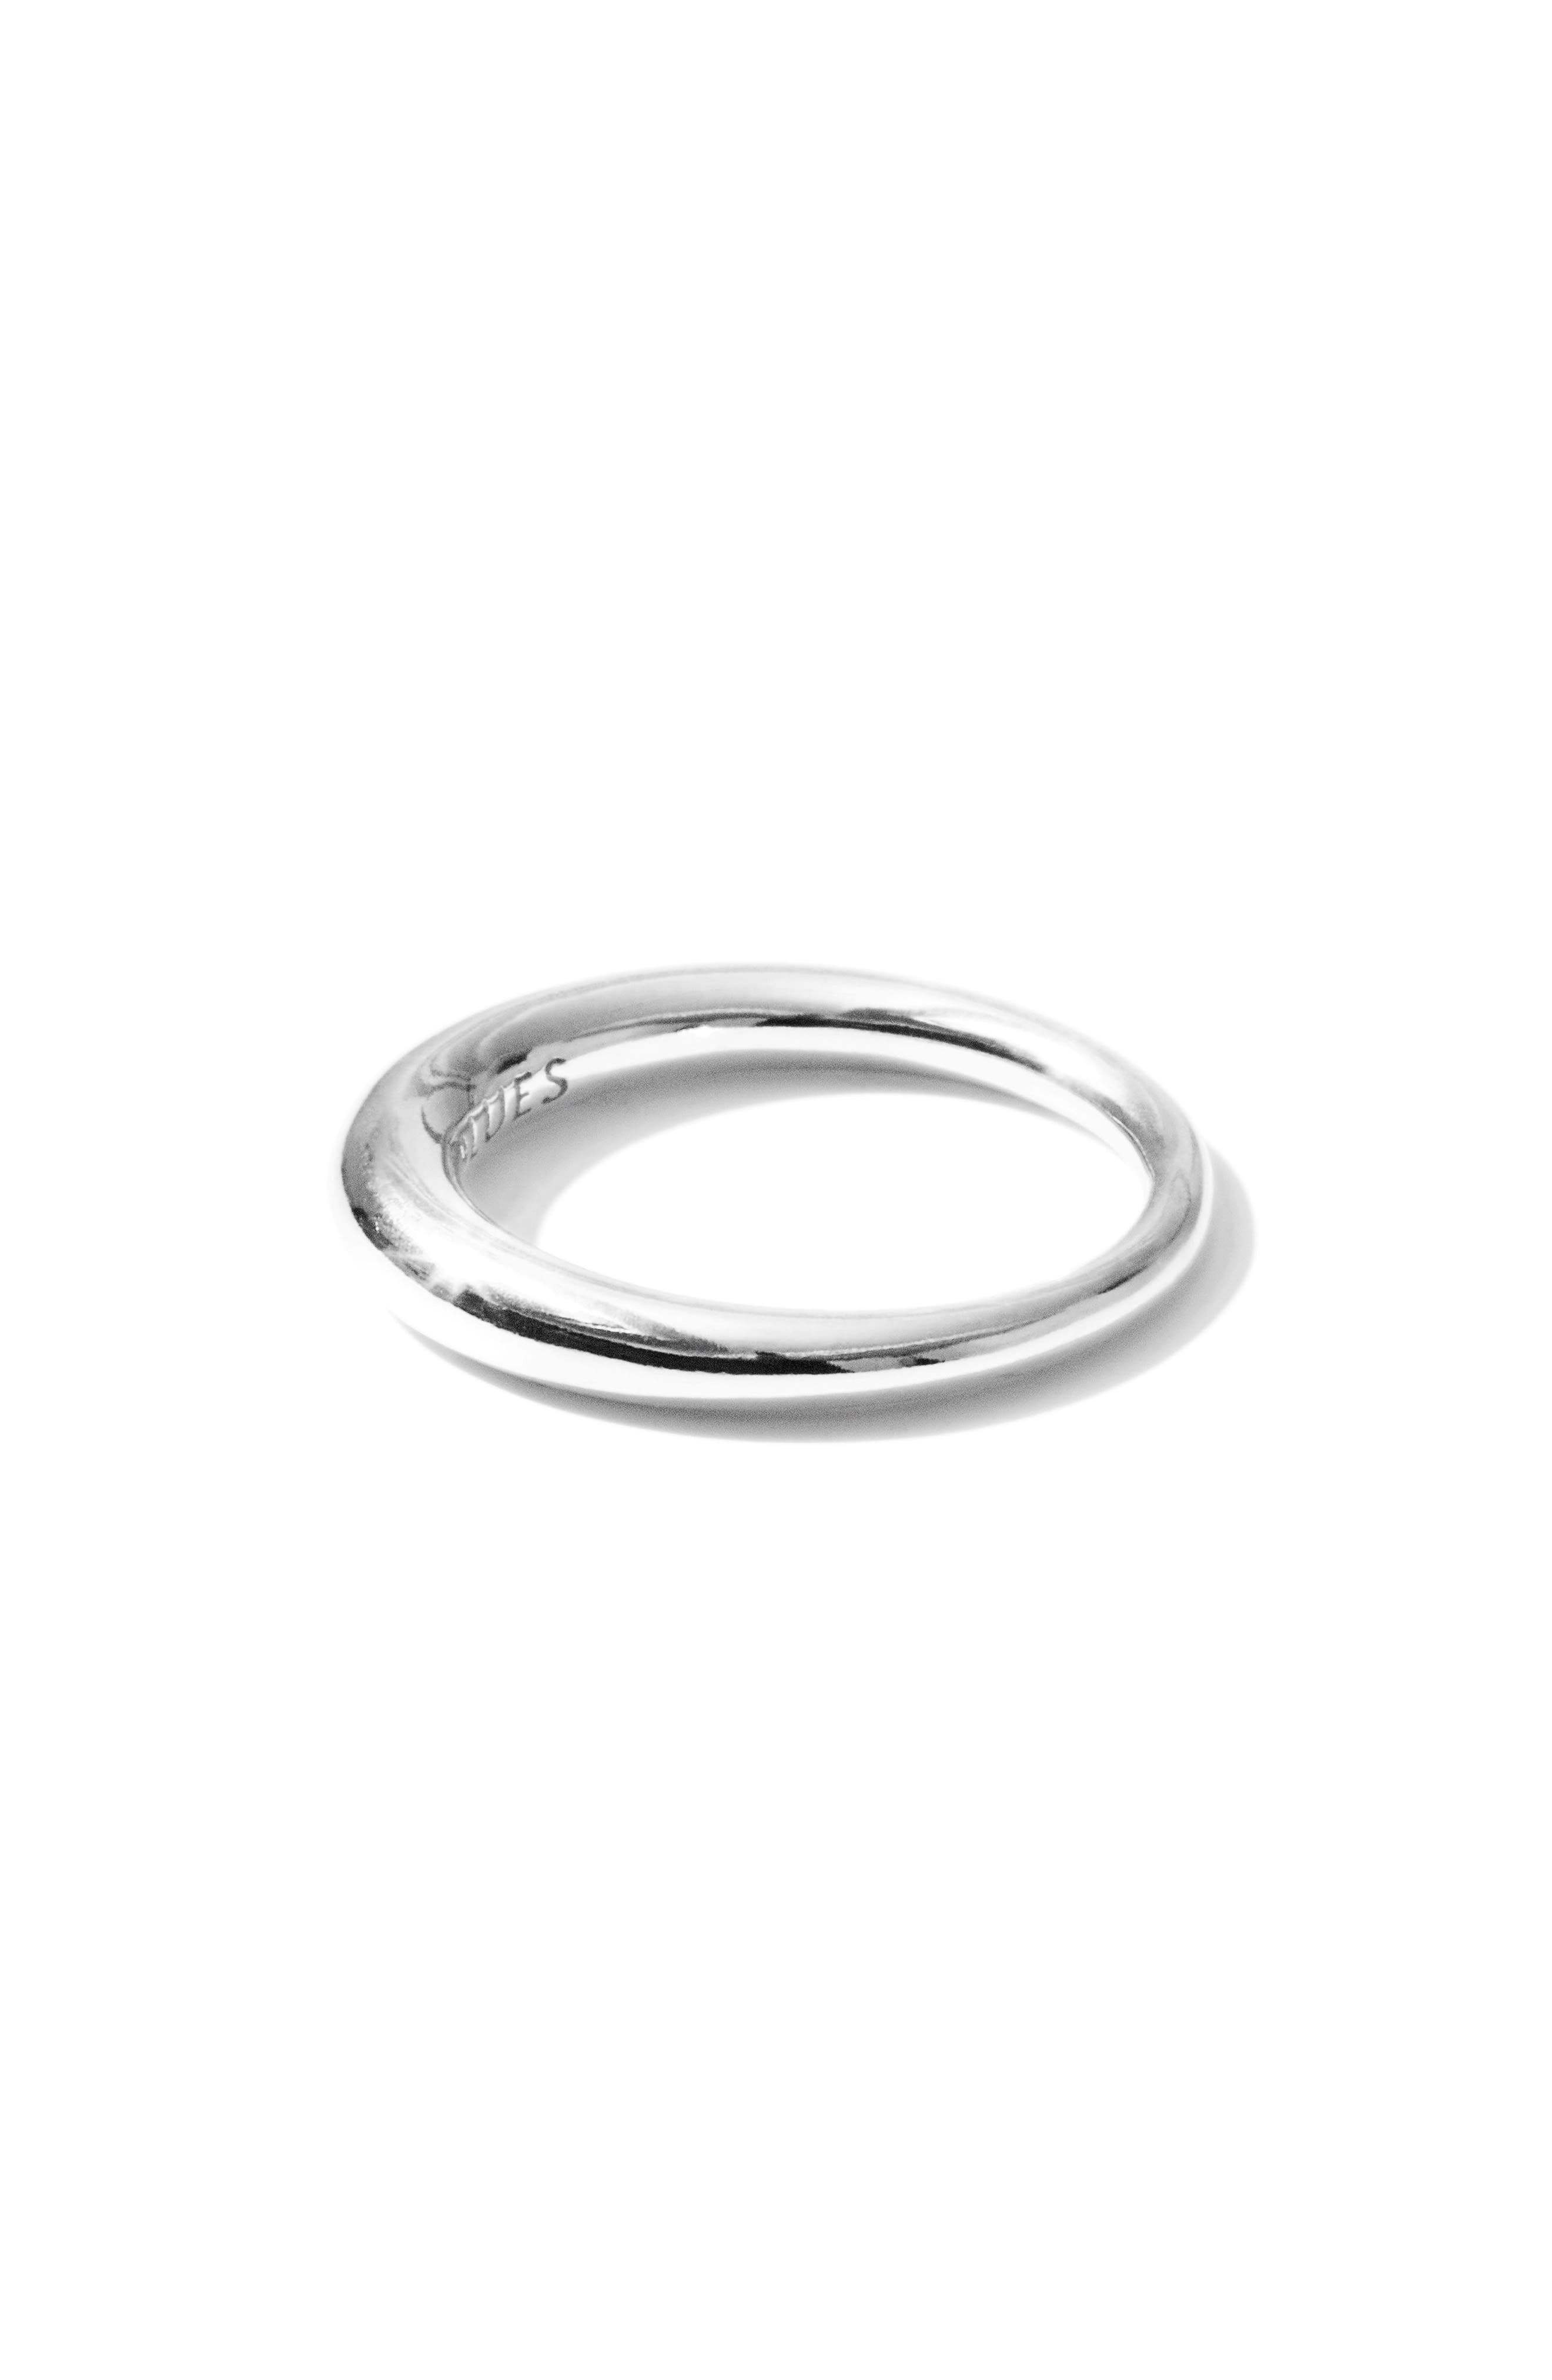 Small Snake Polished Silver Ring,                             Alternate thumbnail 4, color,                             POLISHED SILVER